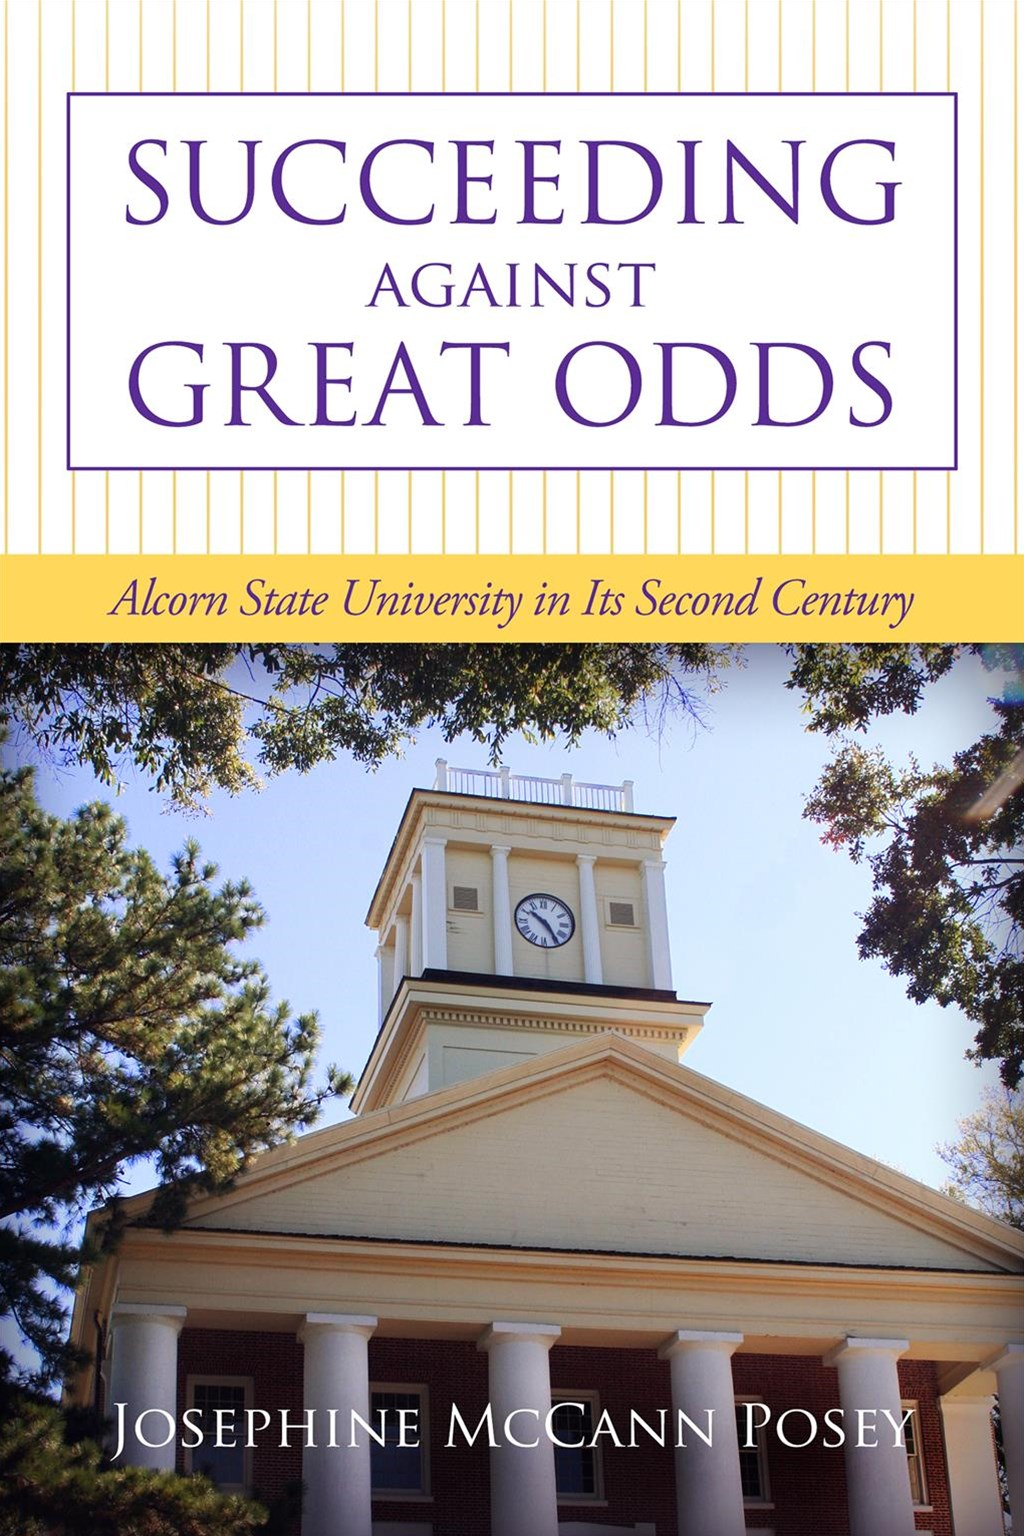 Succeeding Against Great Odds